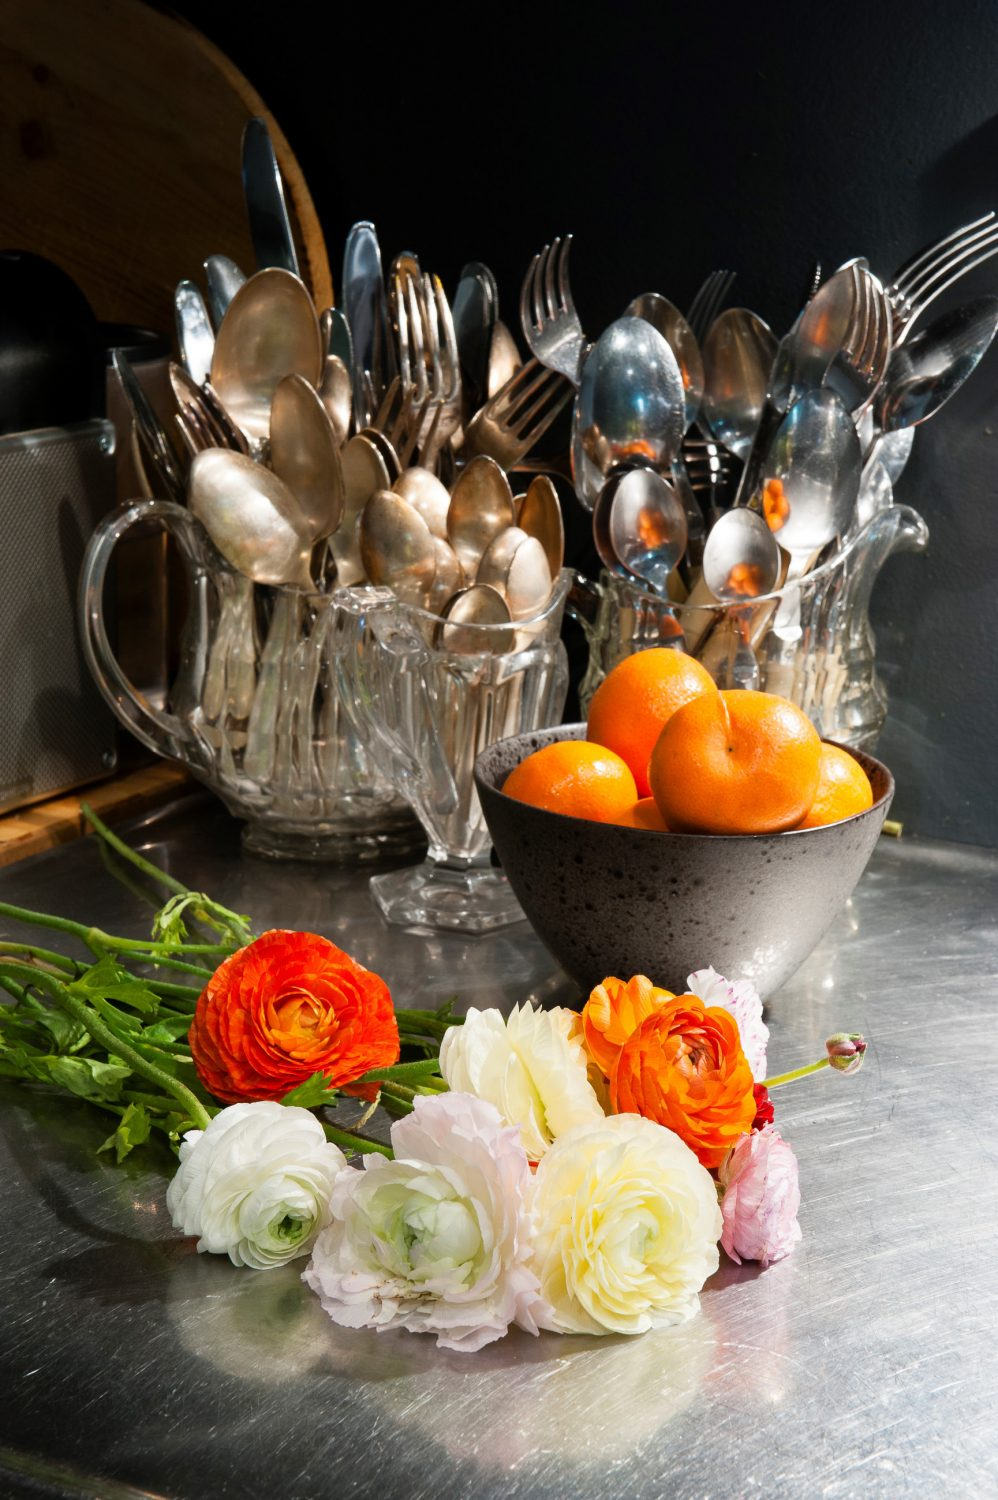 In keeping with the grand, rich feeling of the whole apartment, Karen's cooking utensils and cutlery are kept in a collection of pressed glass jugs and vases